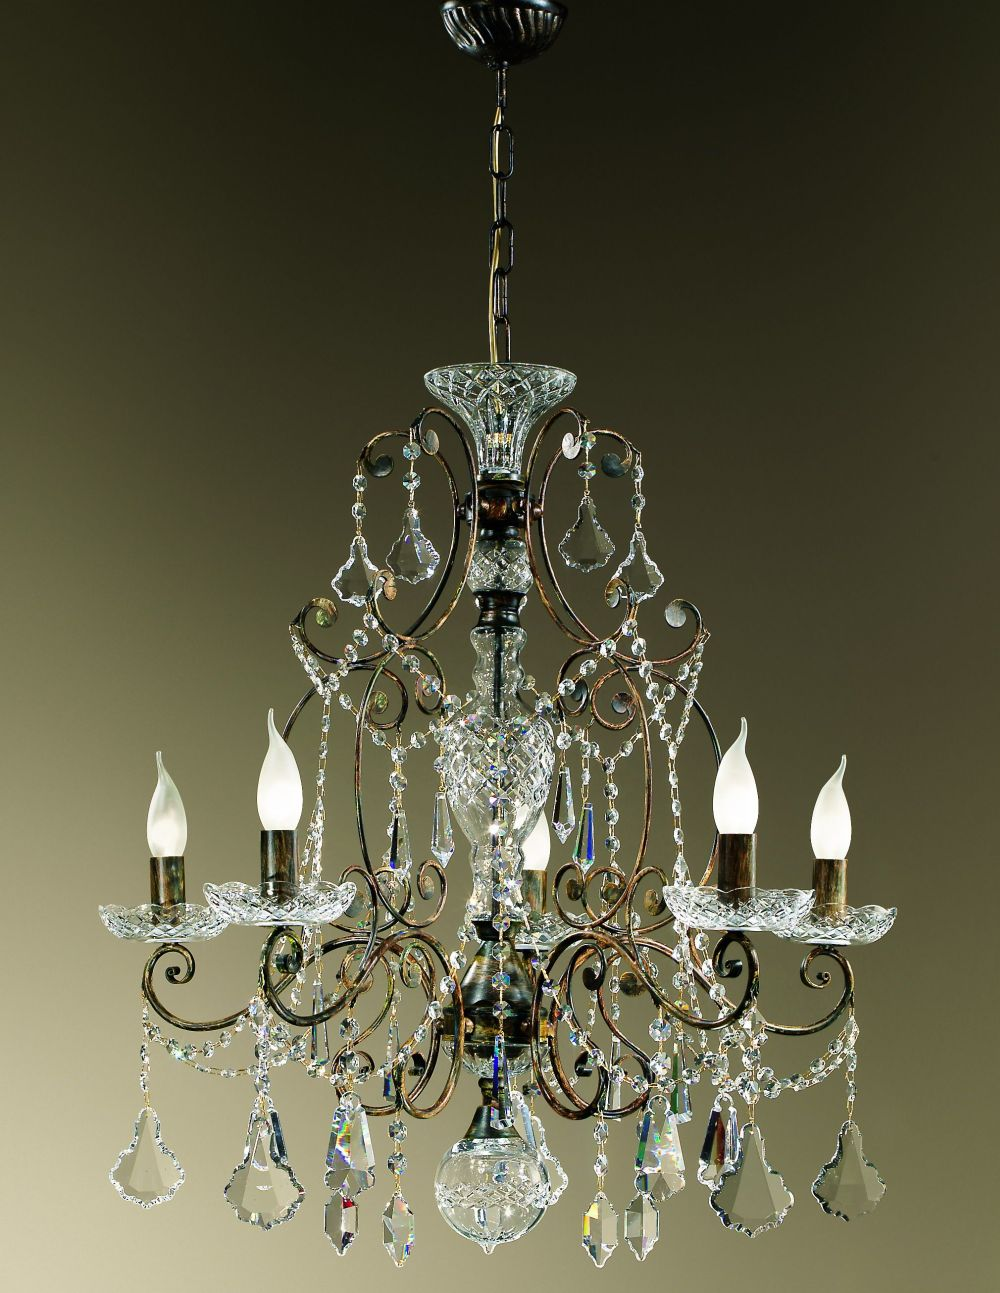 Fine 5 light Italian chandelier with cut crystal pendants